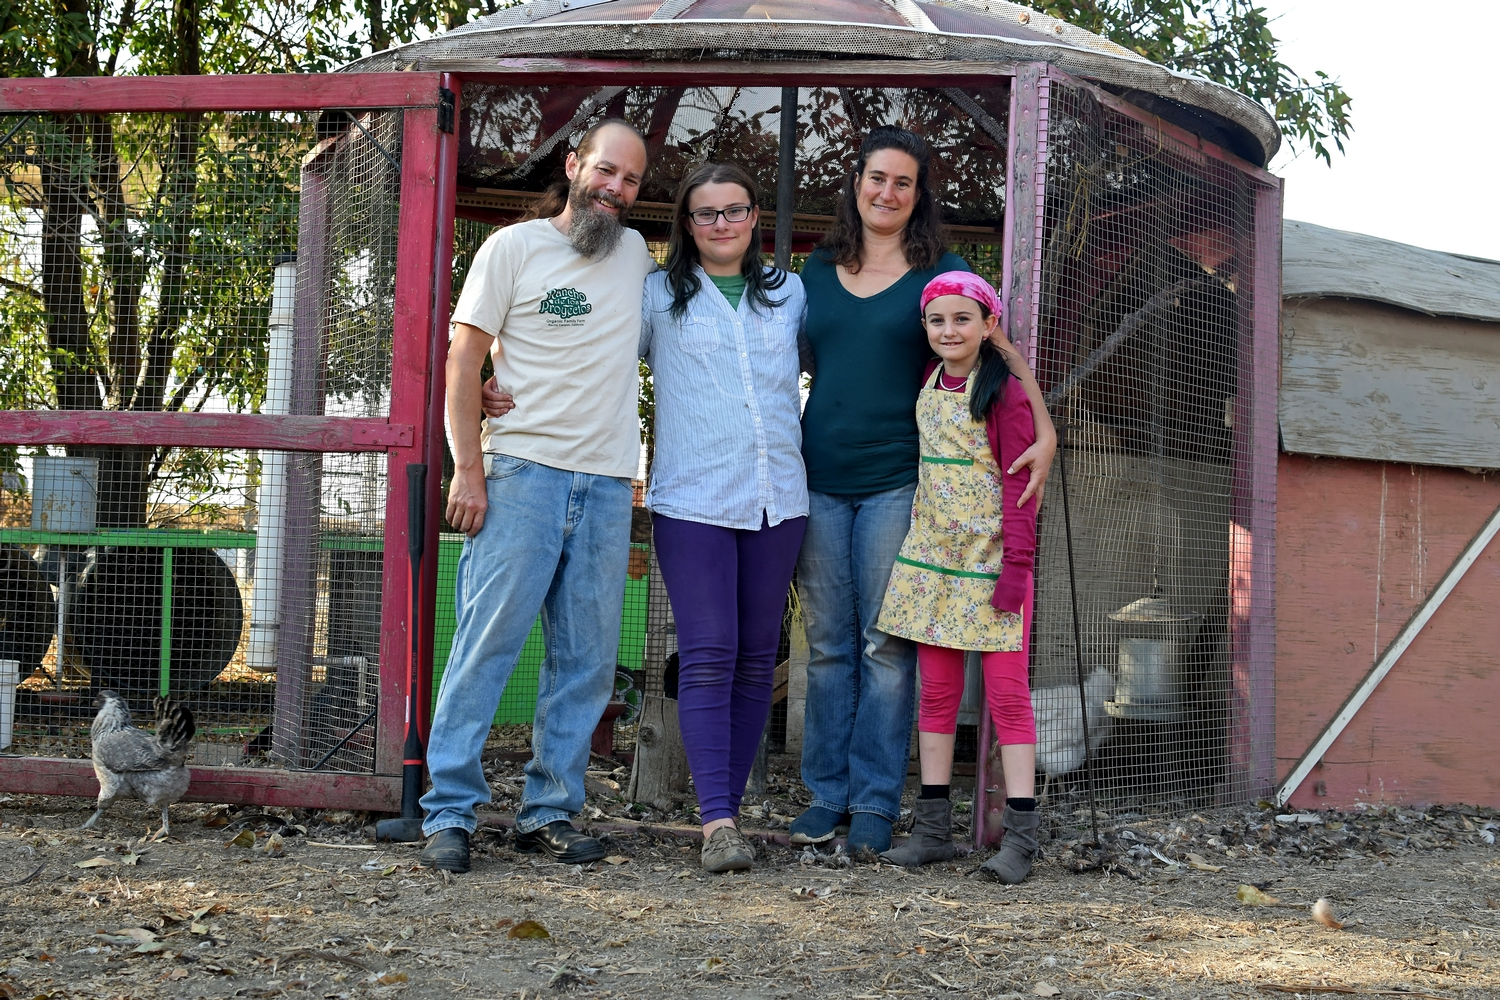 Our family at the chicken coop